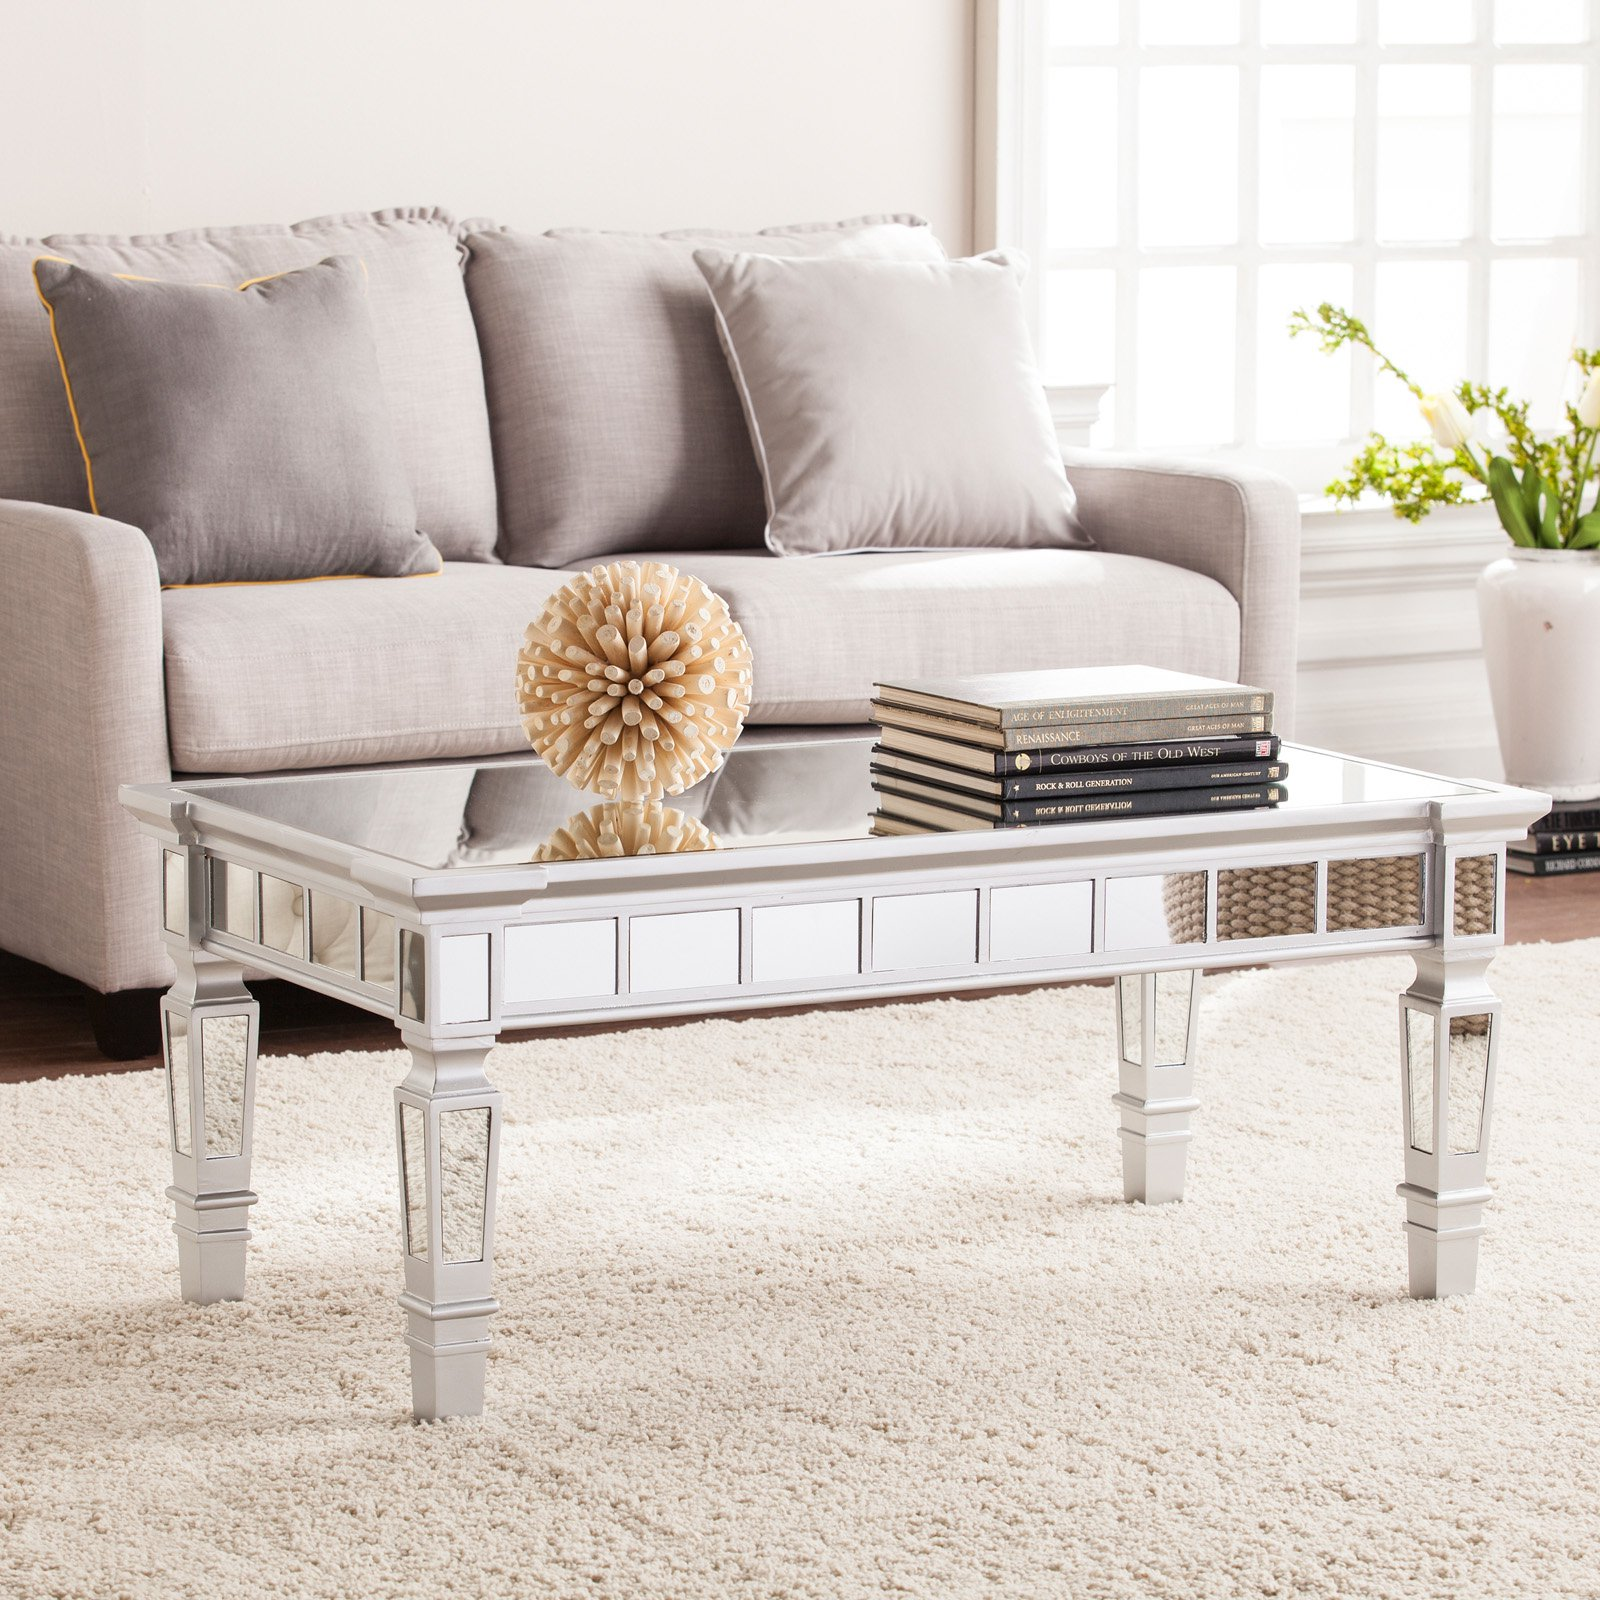 Southern Enterprises Glenview Glam Mirrored Rectangular Cocktail Table - Matte Silver